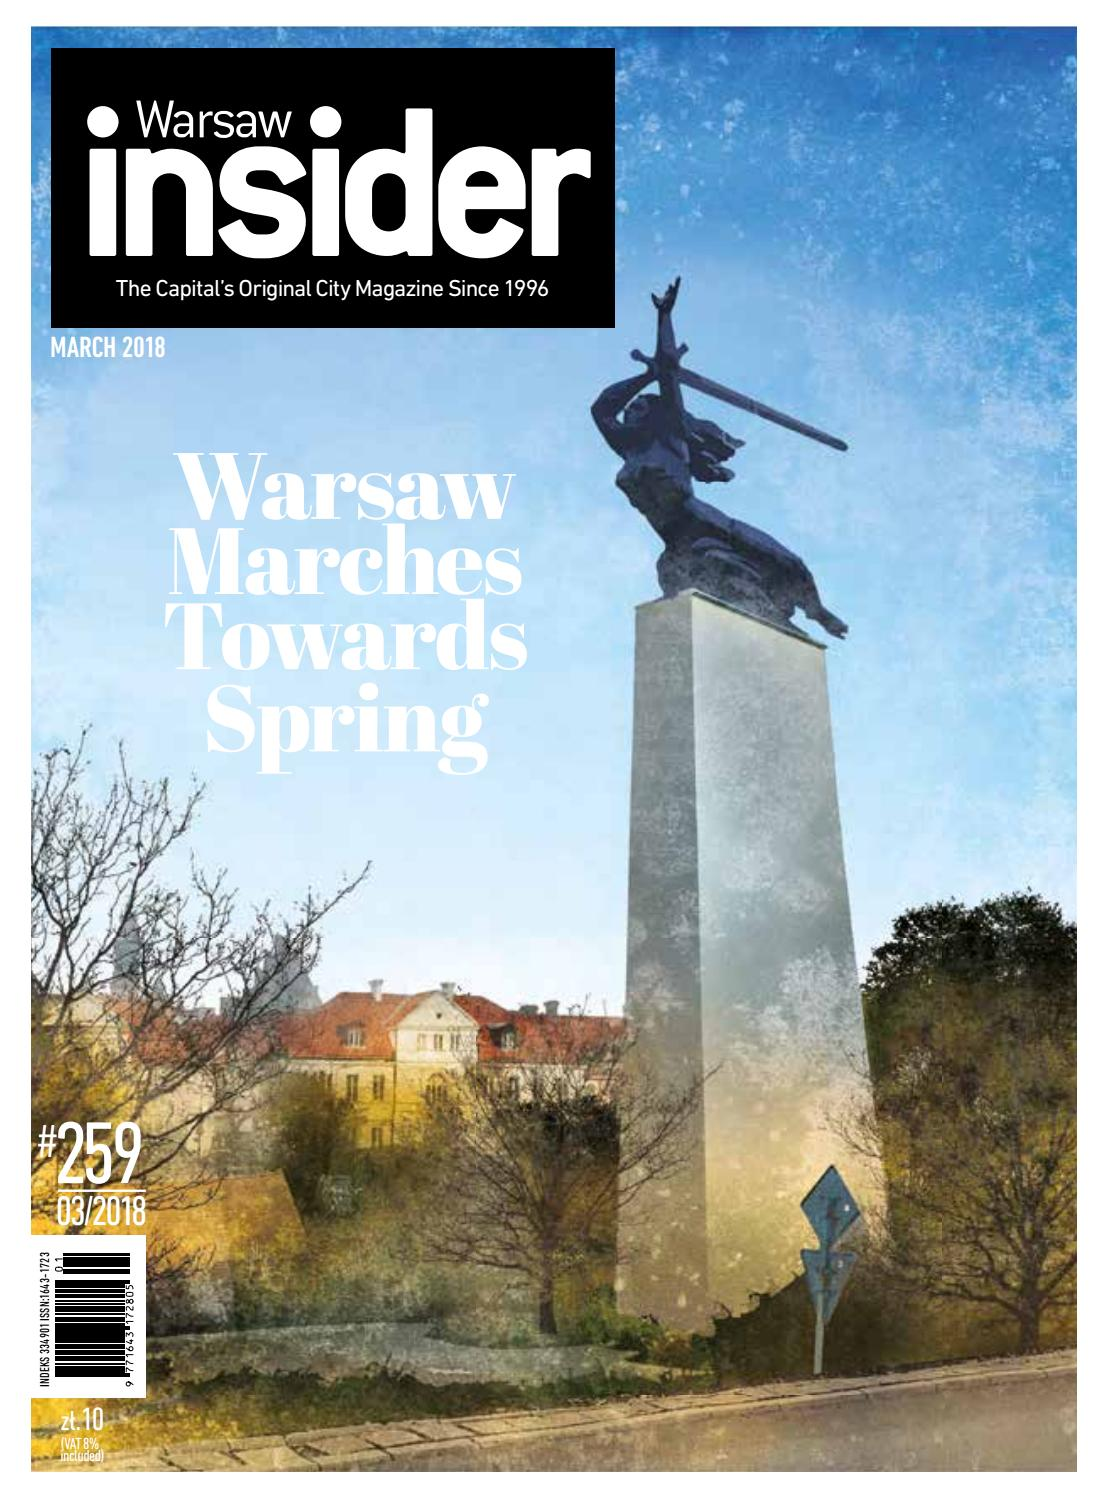 d90a4d55a Warsaw Insider March 2018 #259 by Valkea Media Pro - issuu